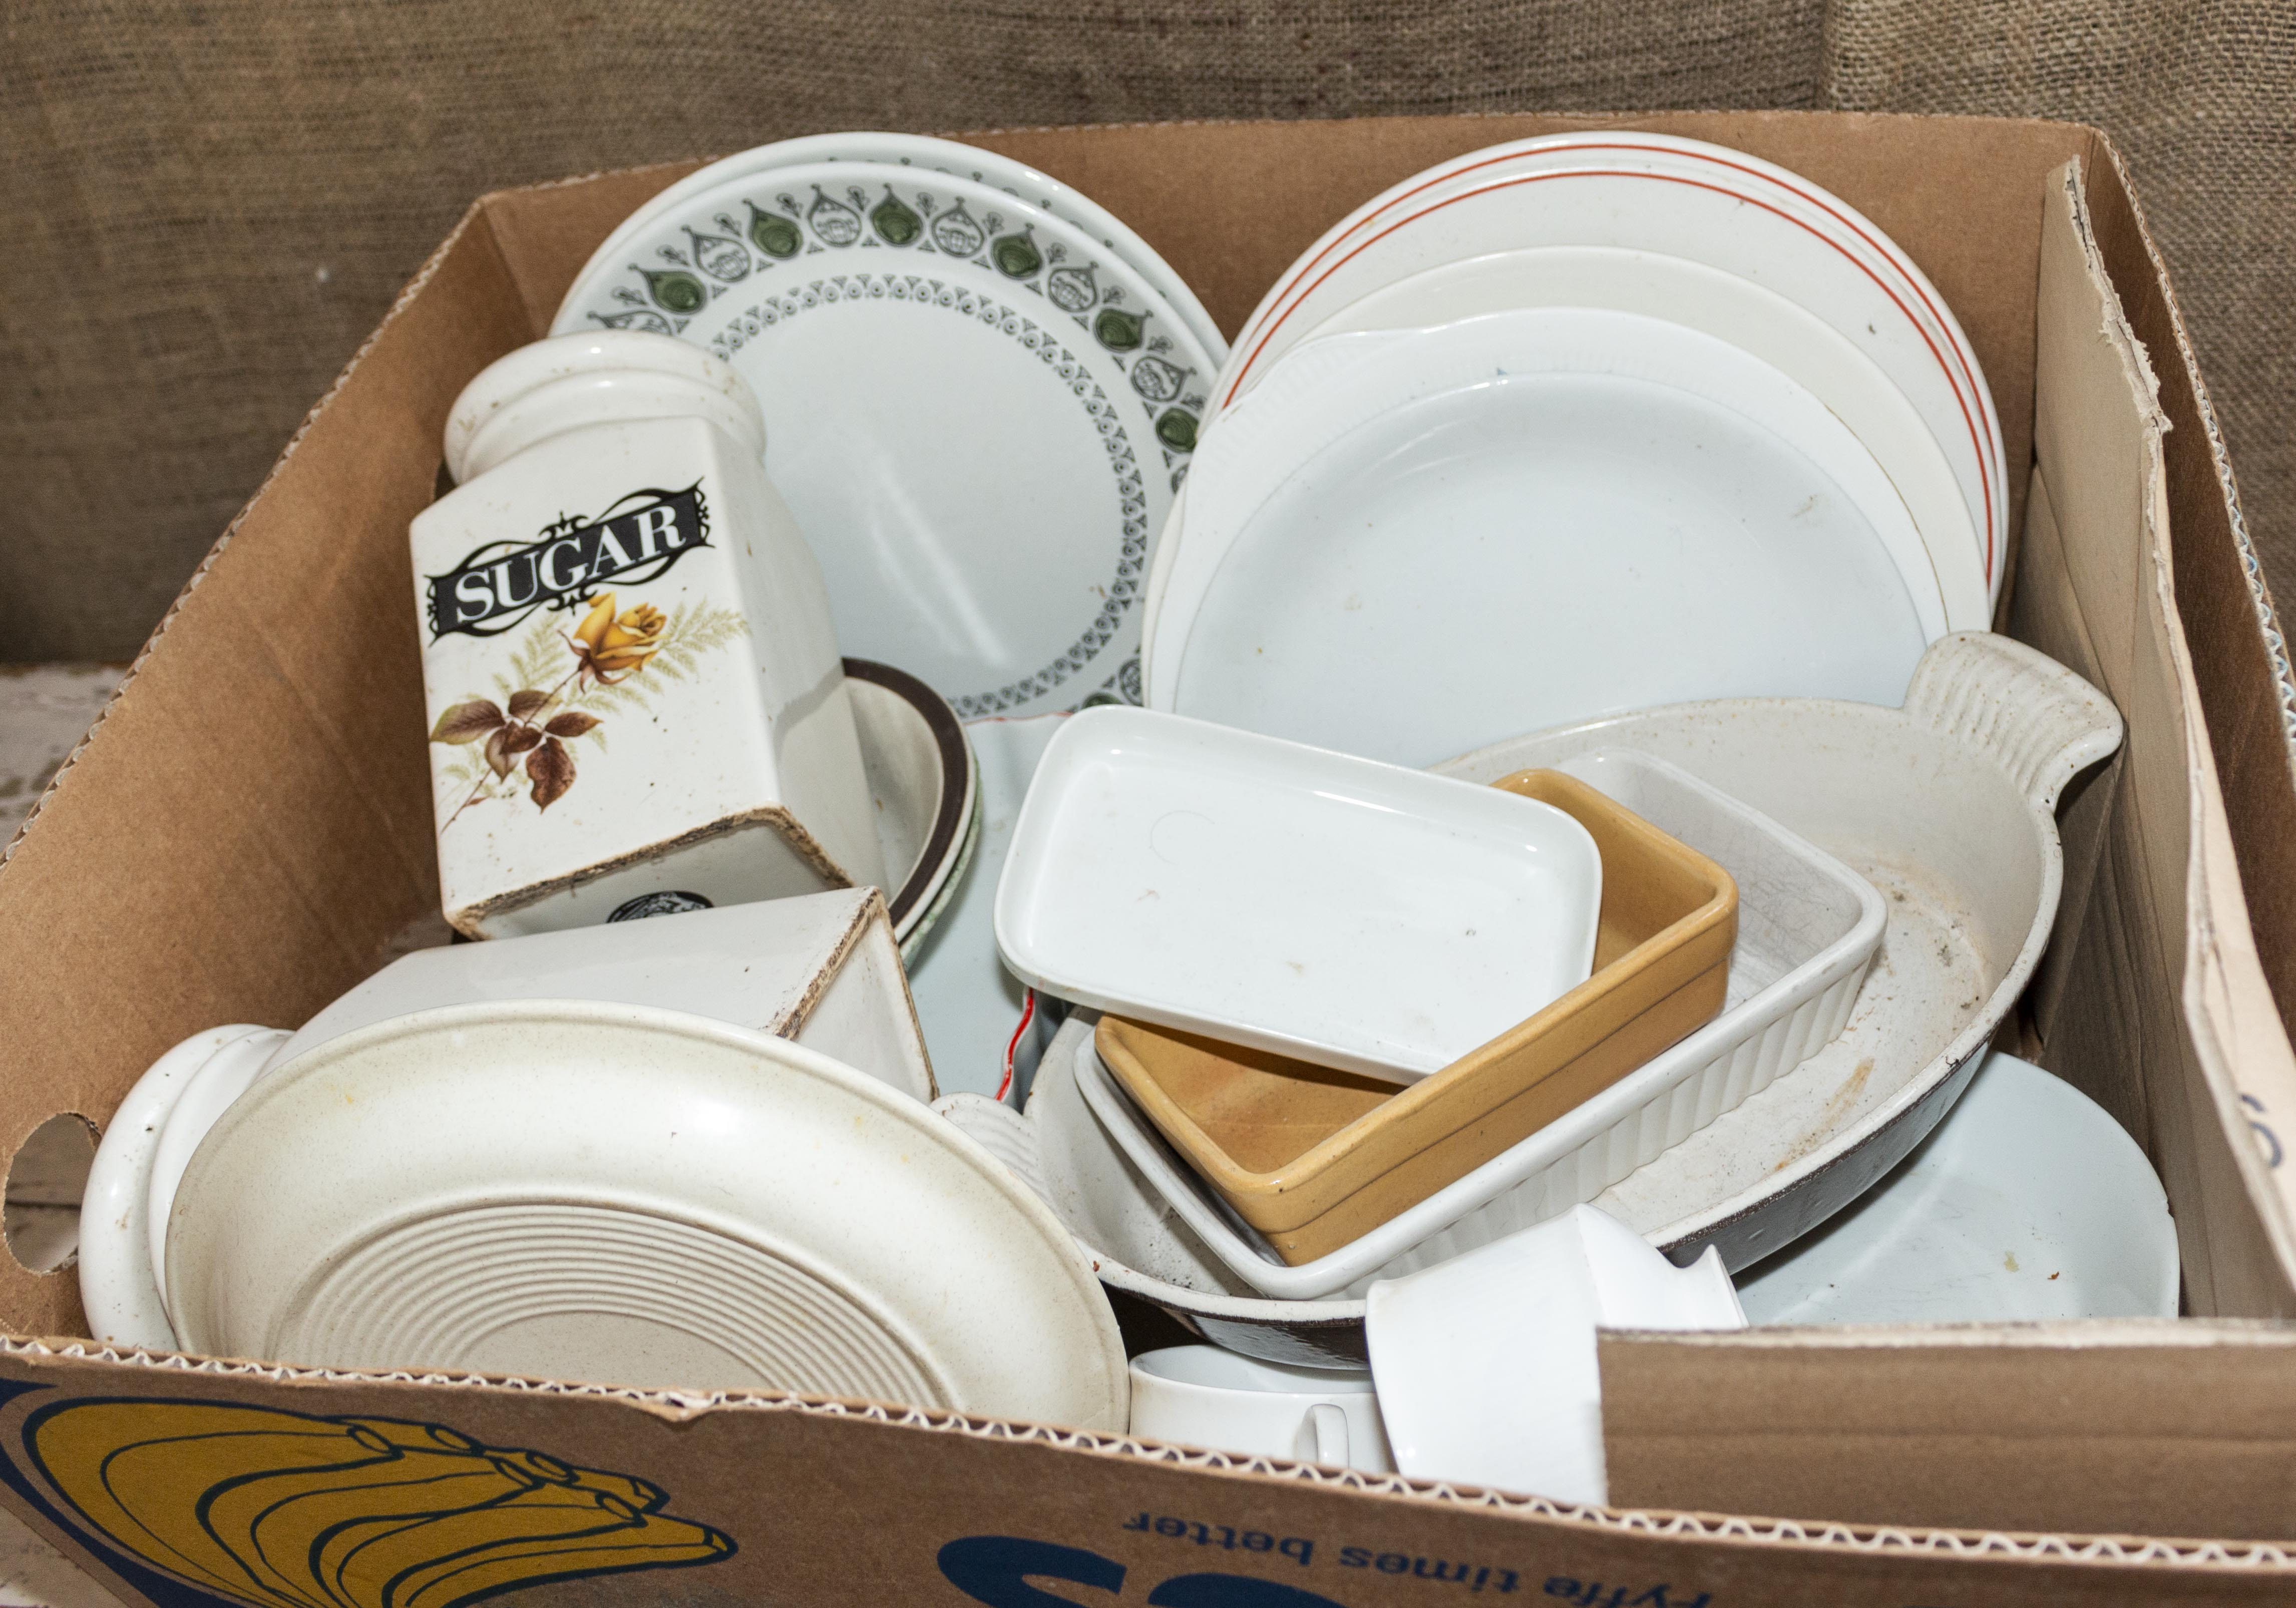 Lot 54 - A box of kitchen dishes and plates